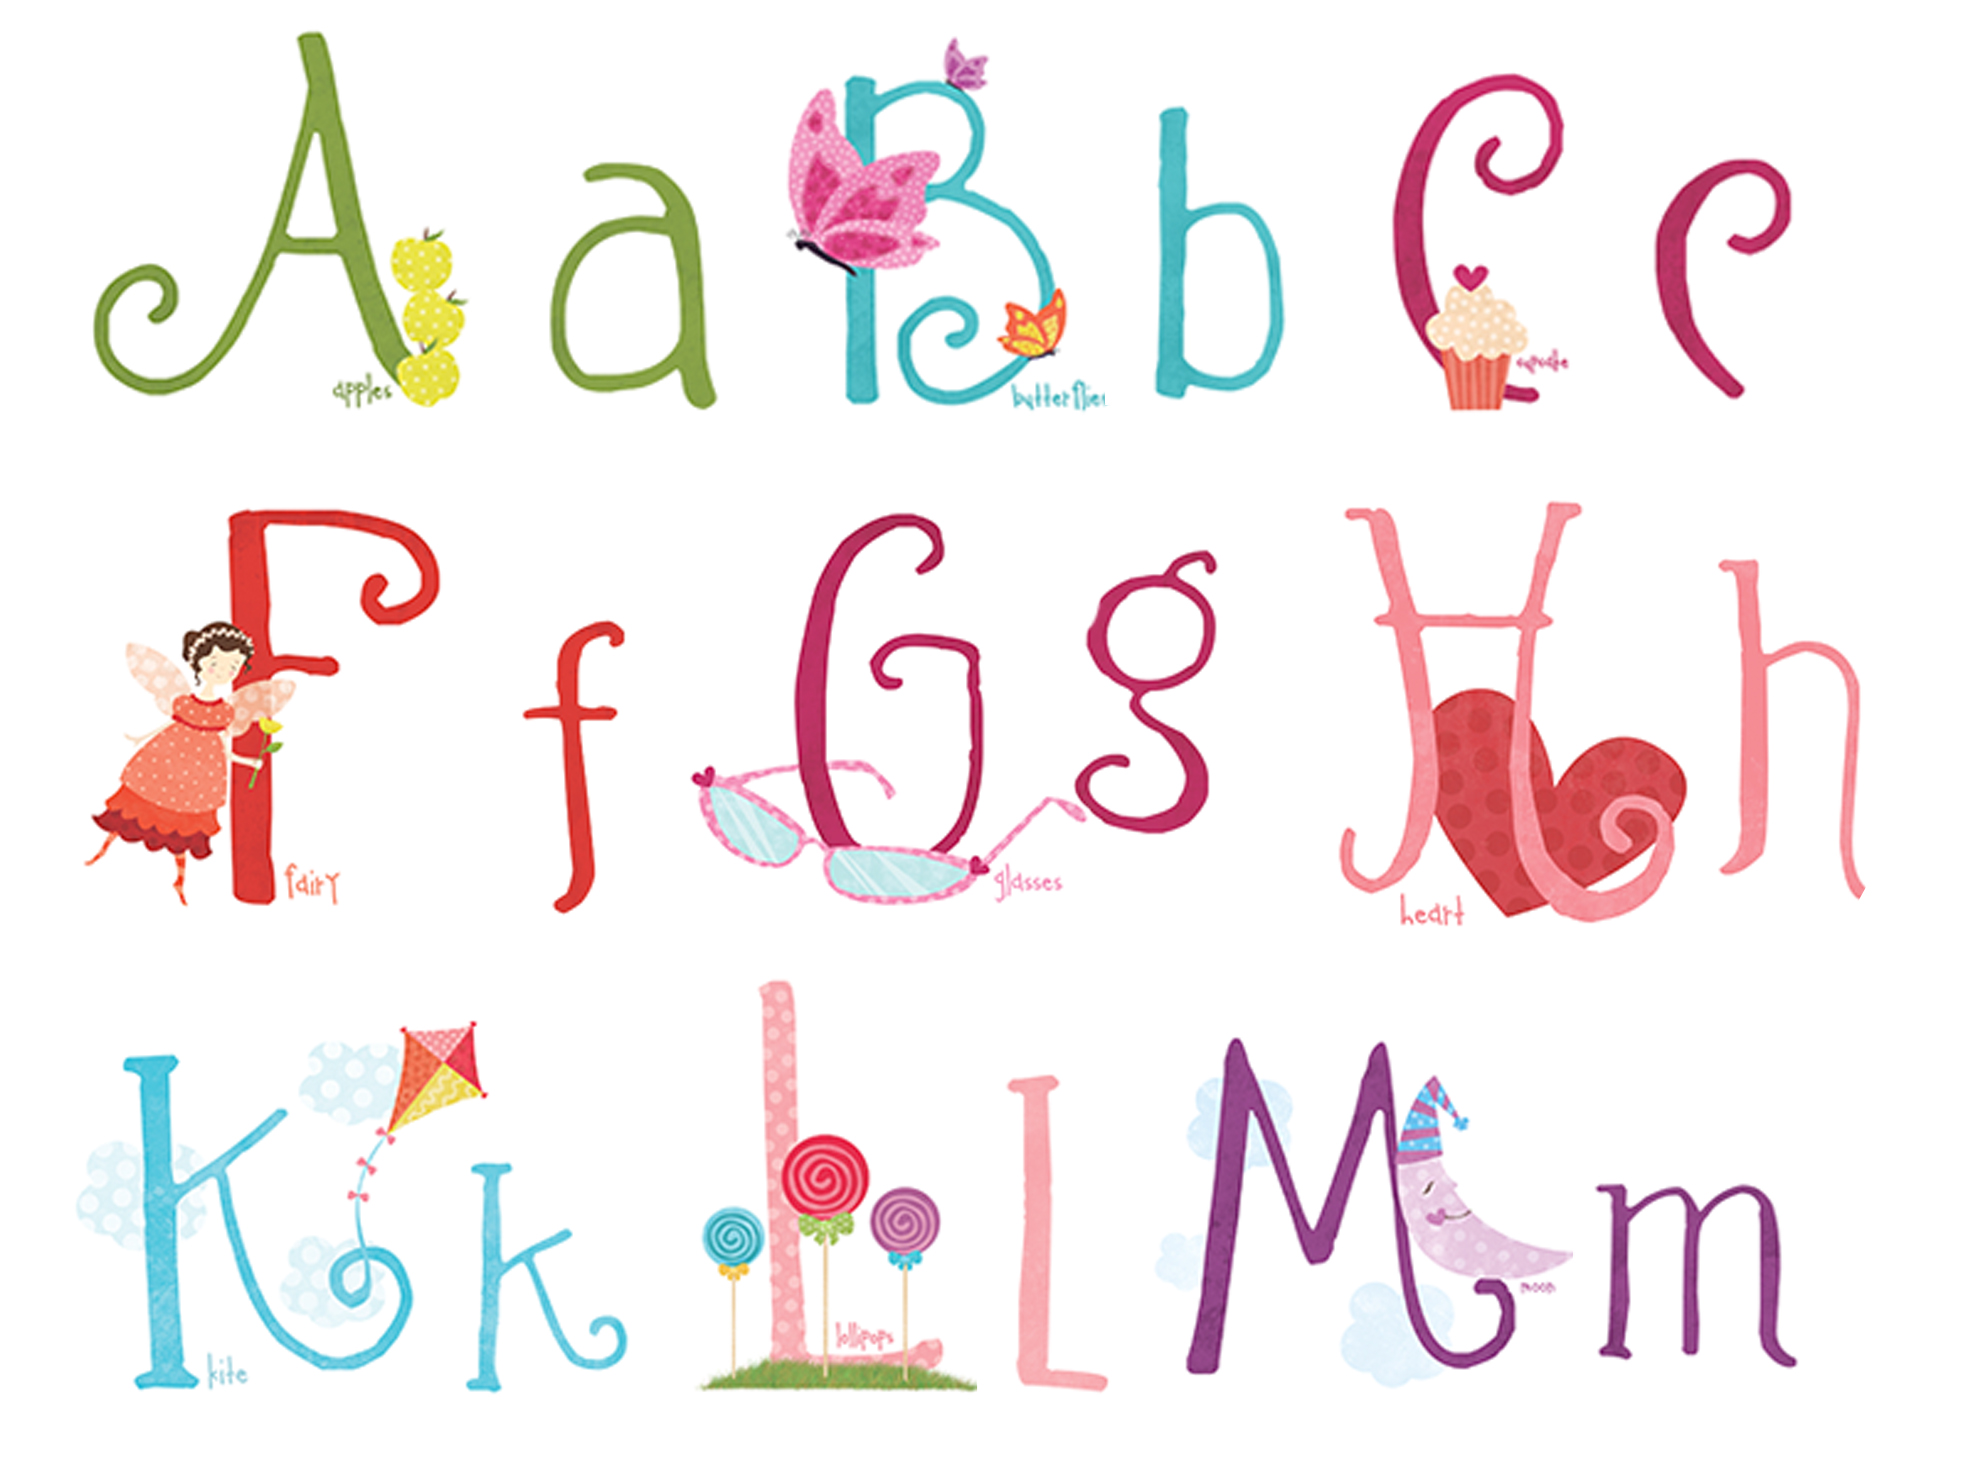 16 Cute Alphabet Letters Font Images - Cute Letter Fonts, Cute Font Letters Alphabet and Western ...